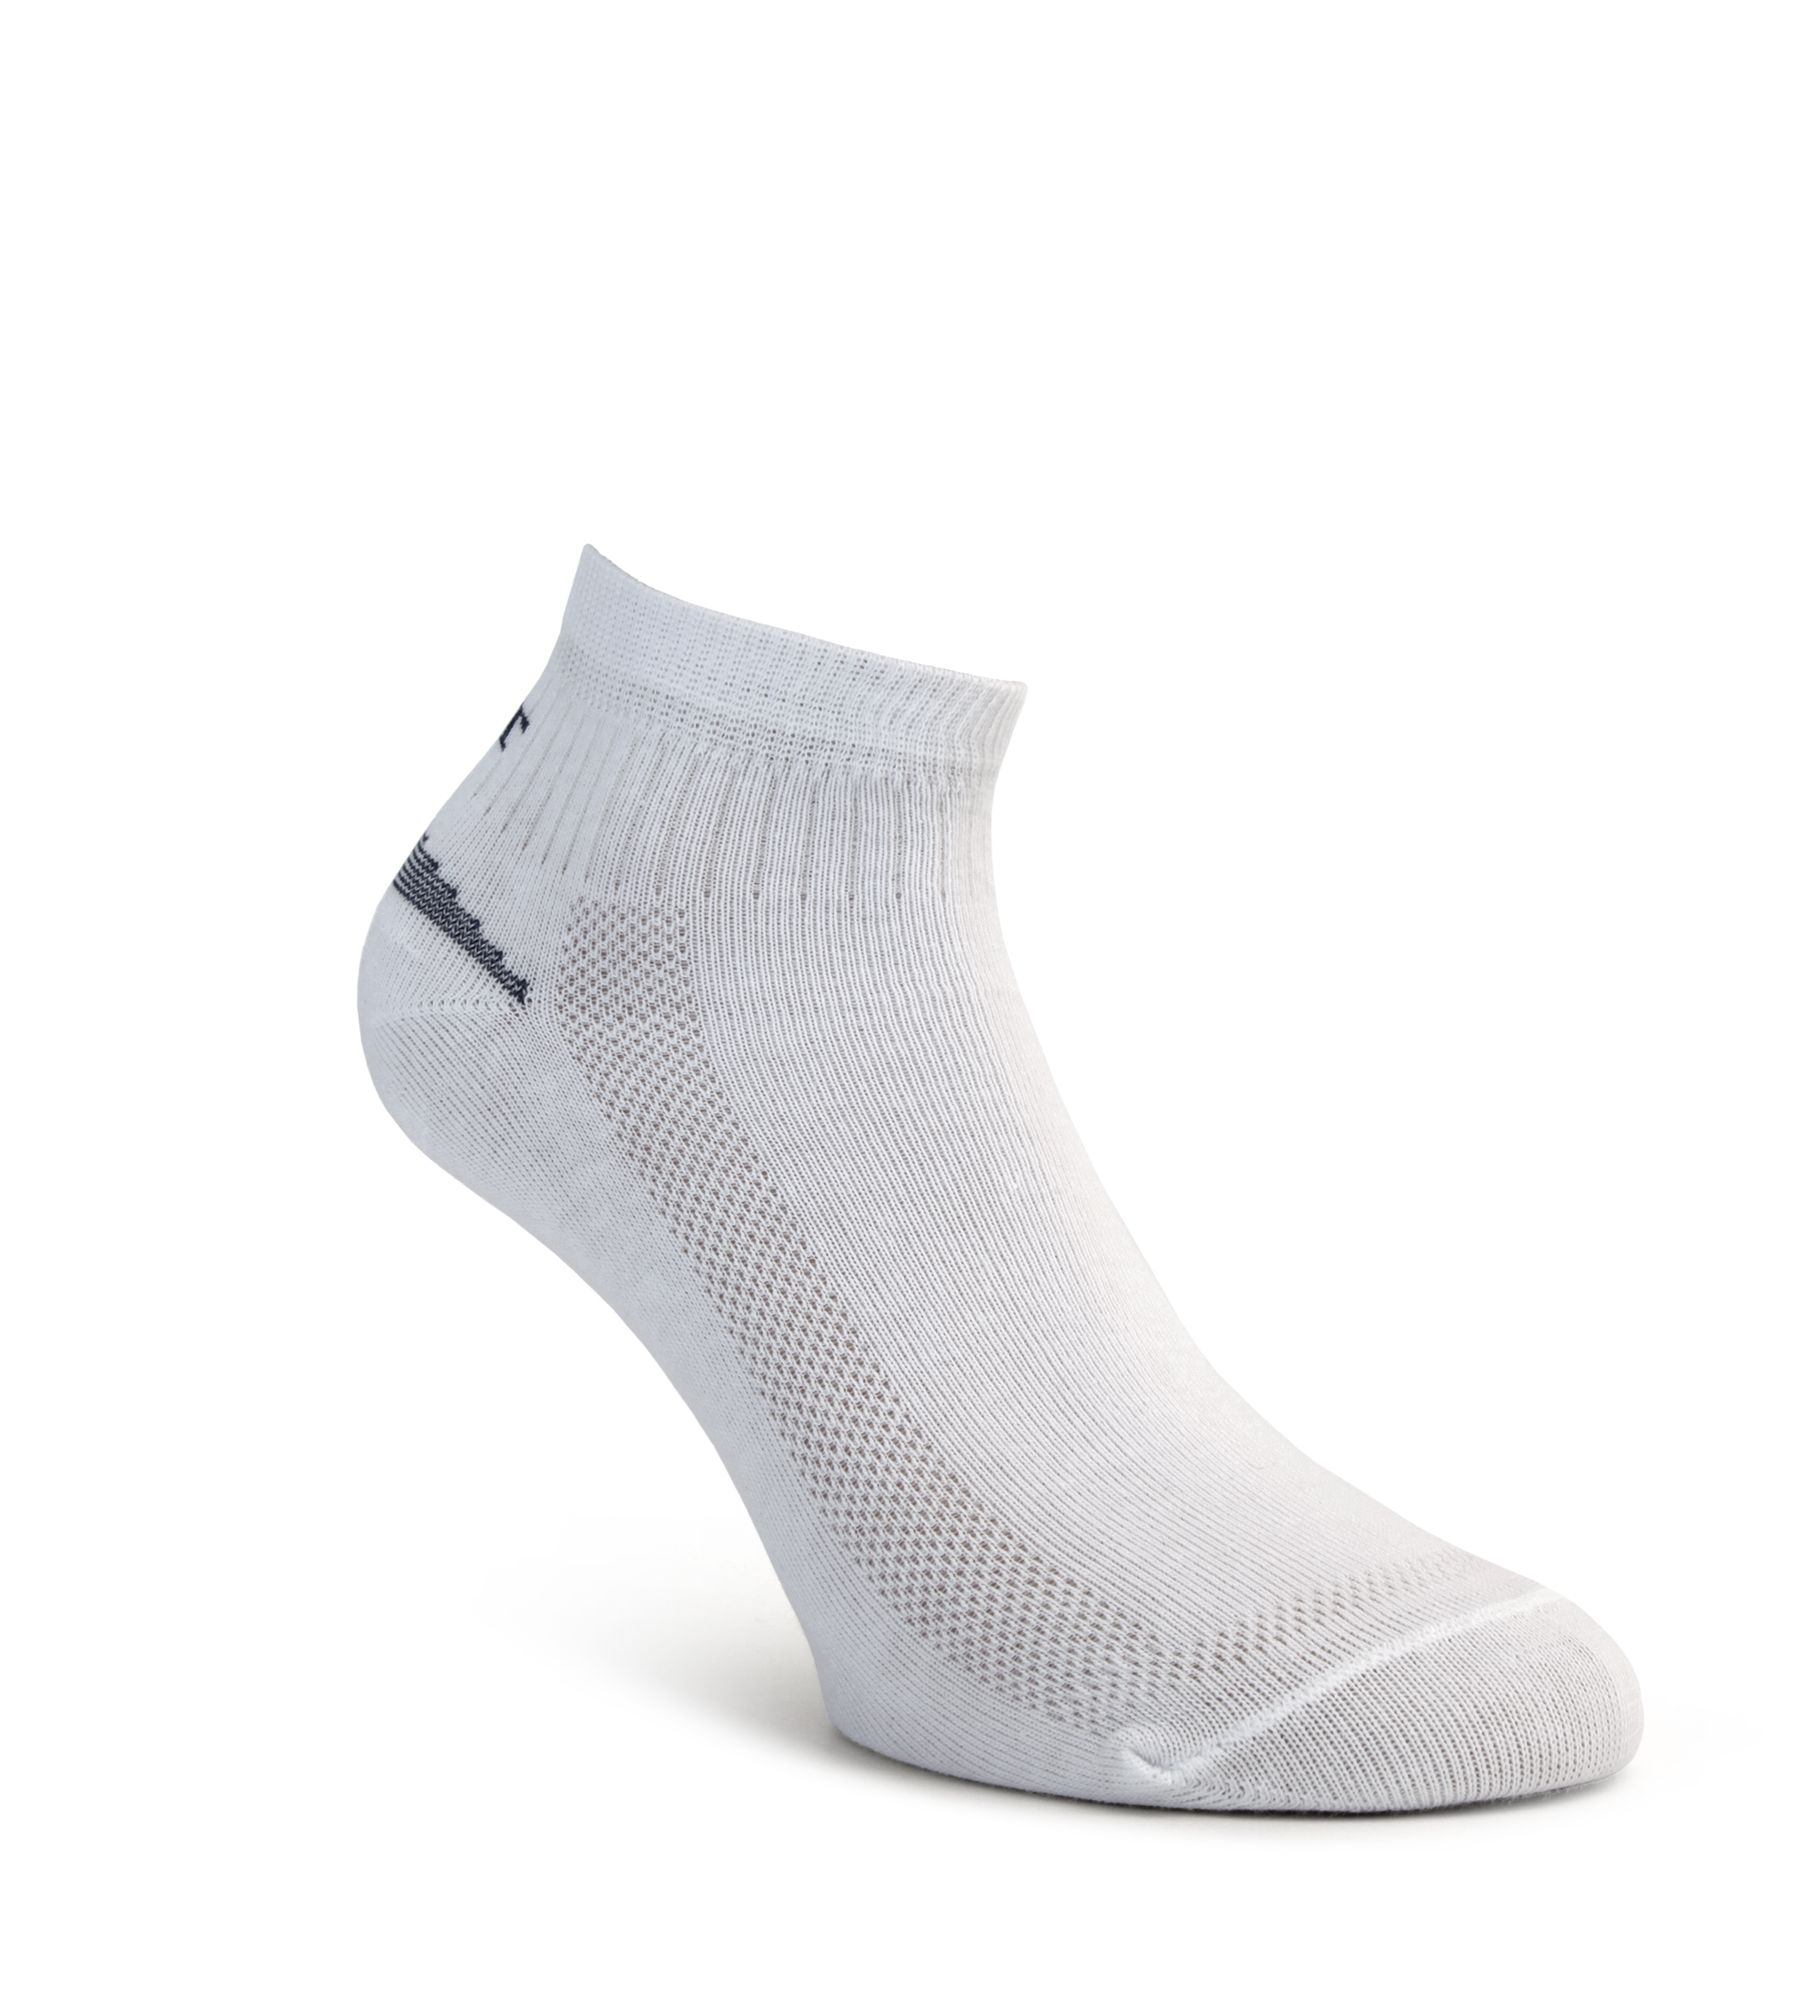 Soquete curto Ankle sock Calcetín invisible Tamanhosize